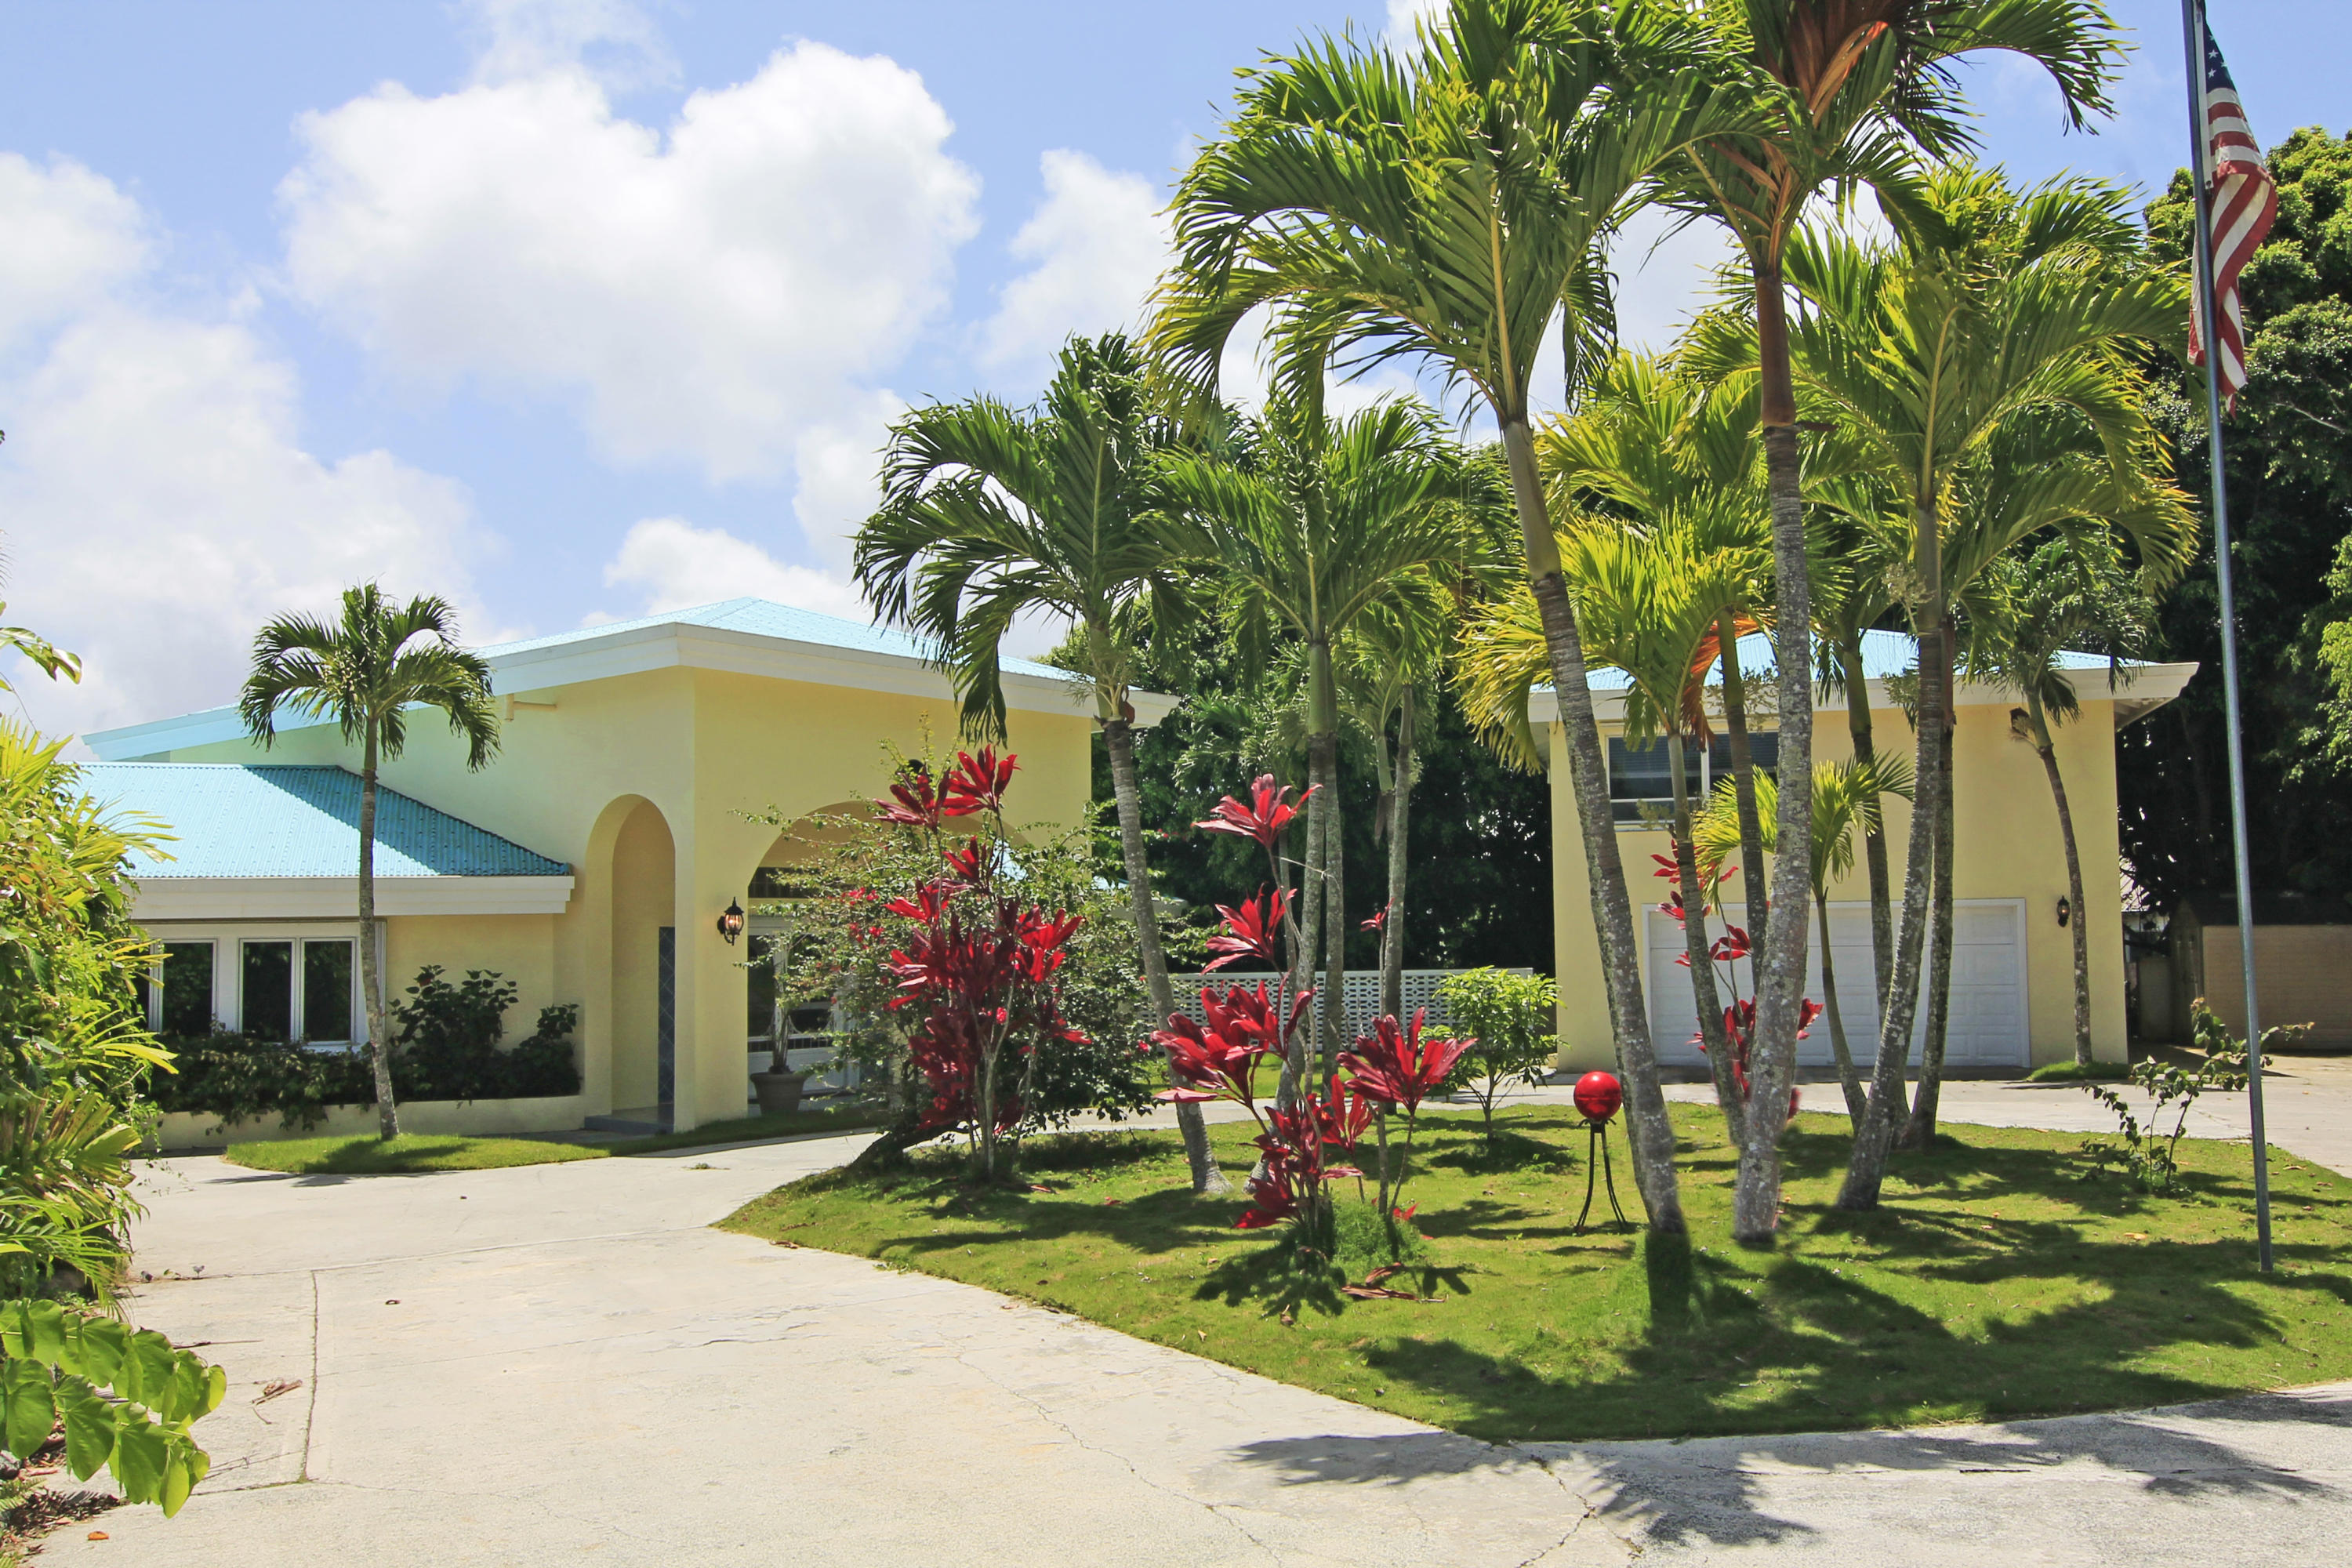 Multi-Family Home for Sale at 3A-24 St. Peter LNS 3A-24 St. Peter LNS St Thomas, Virgin Islands 00802 United States Virgin Islands